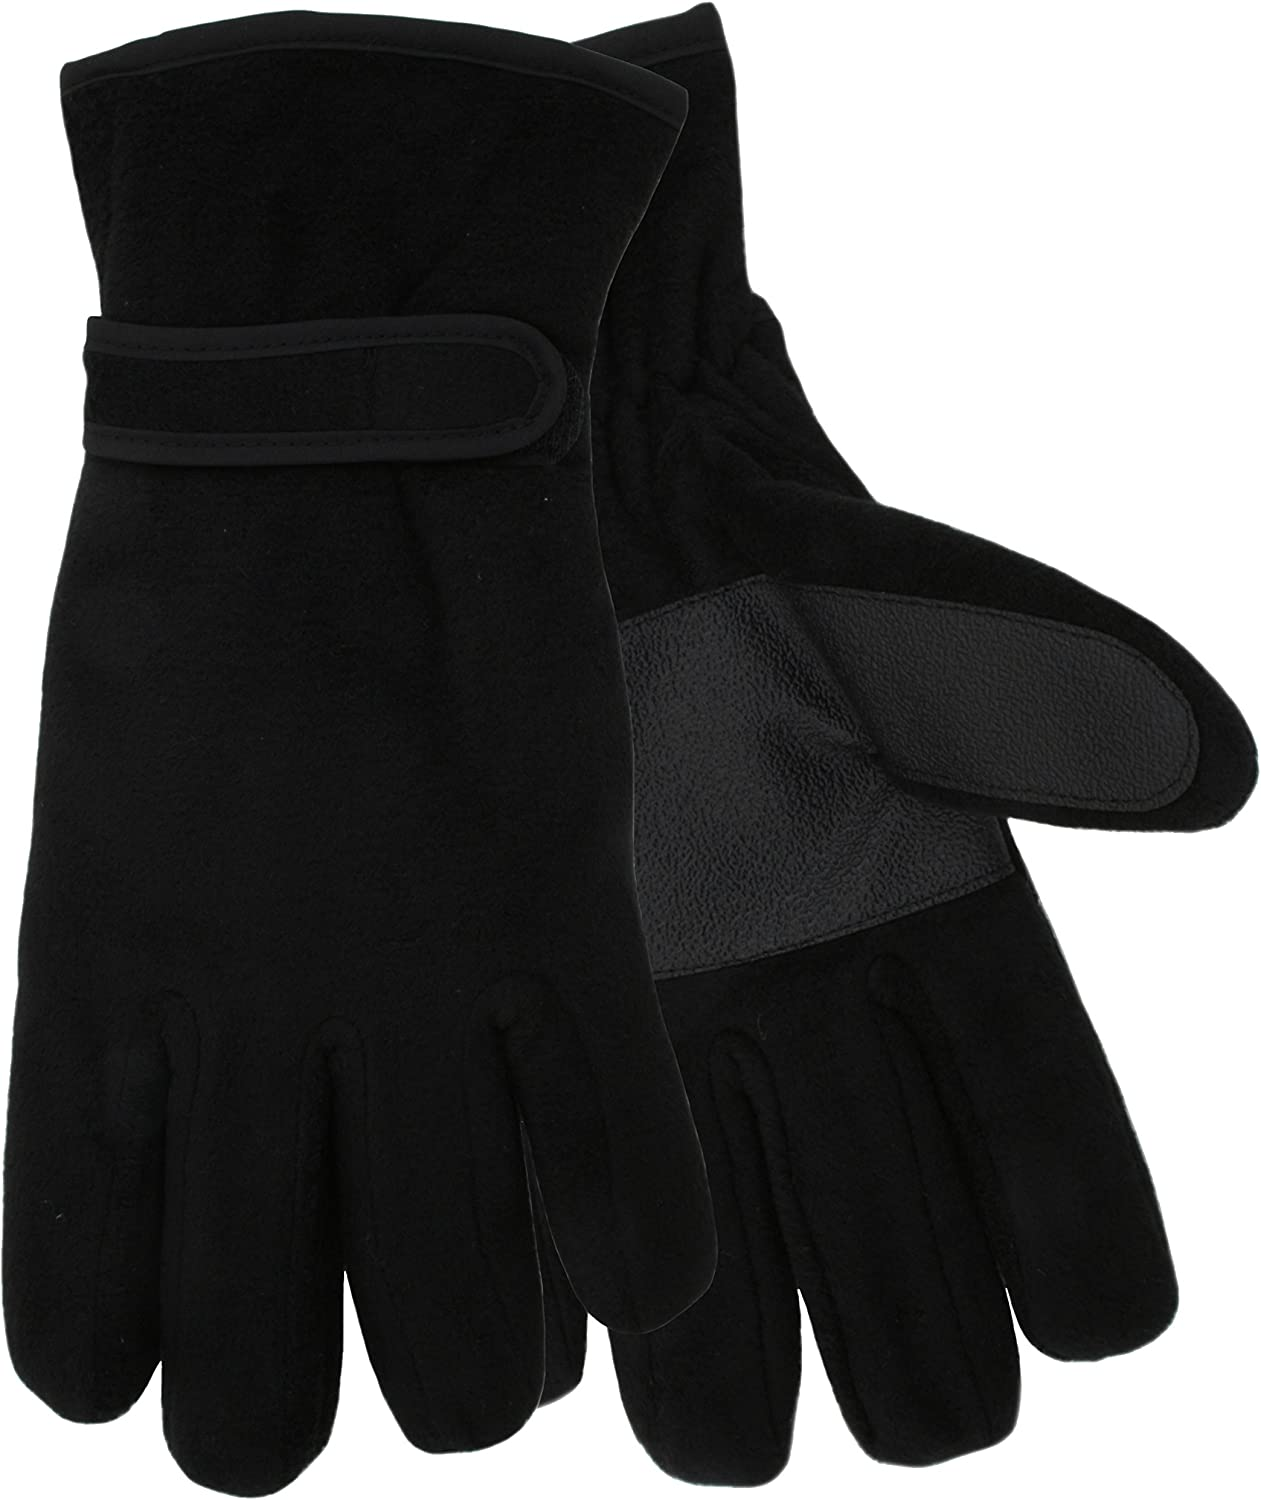 MENS 3M BLACK THINSULATE THERMAL LINED WINTER GLOVES MEDIUM//LARGE